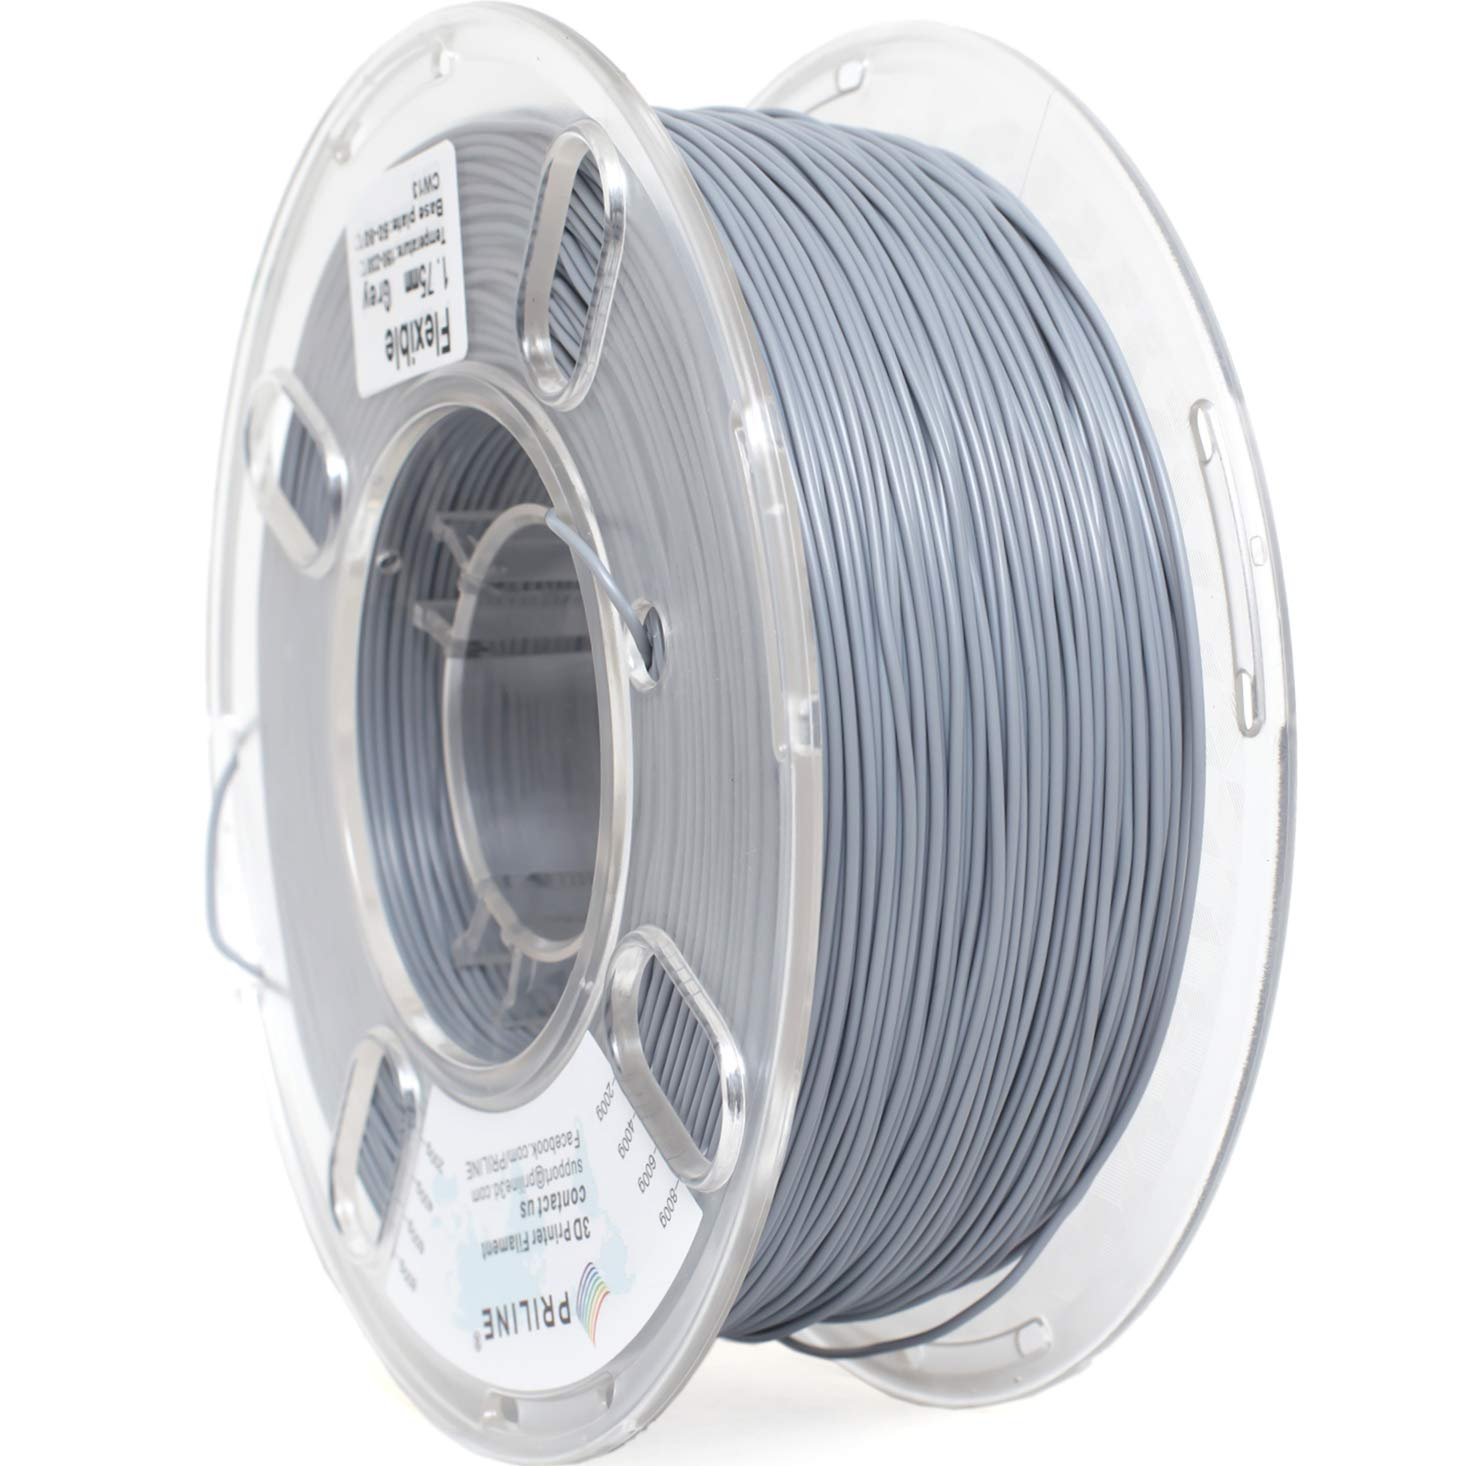 PRILINE TPU-1KG 1.75 3D Printer Filament, Dimensional Accuracy +/- 0.03 mm, 1kg Spool,Gray